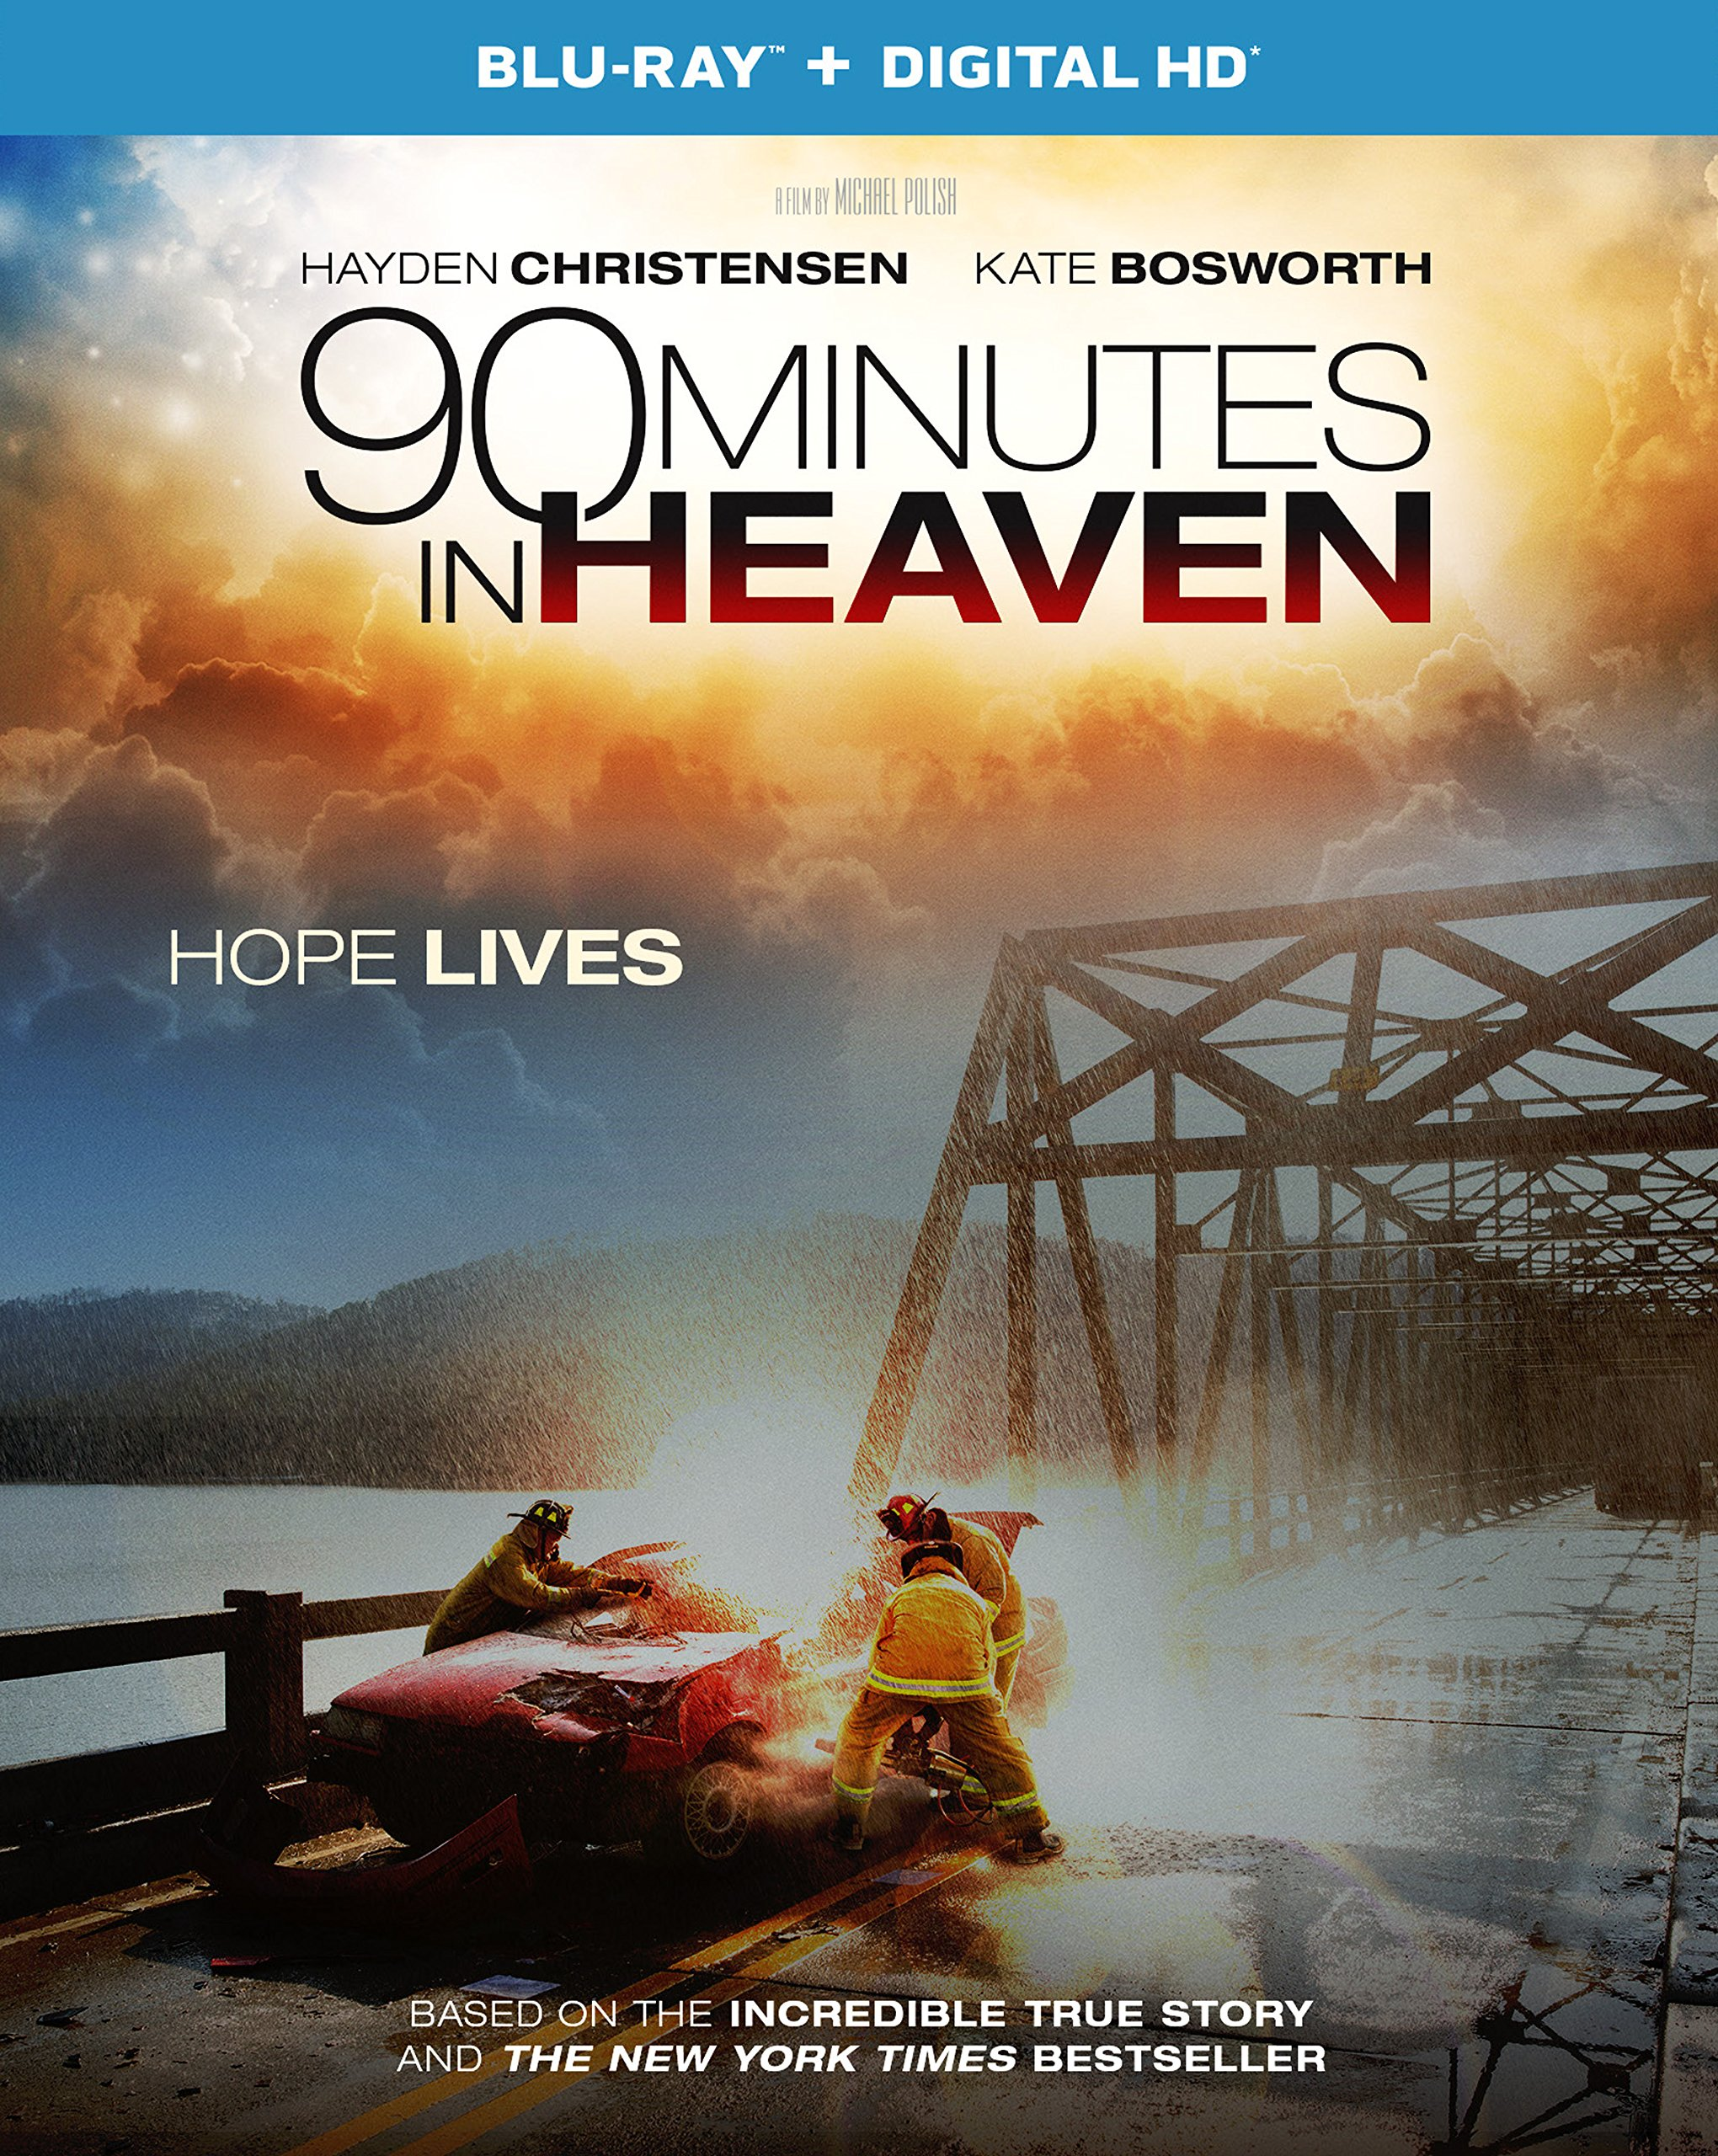 90 Minutes In Heaven Blu-ray Review